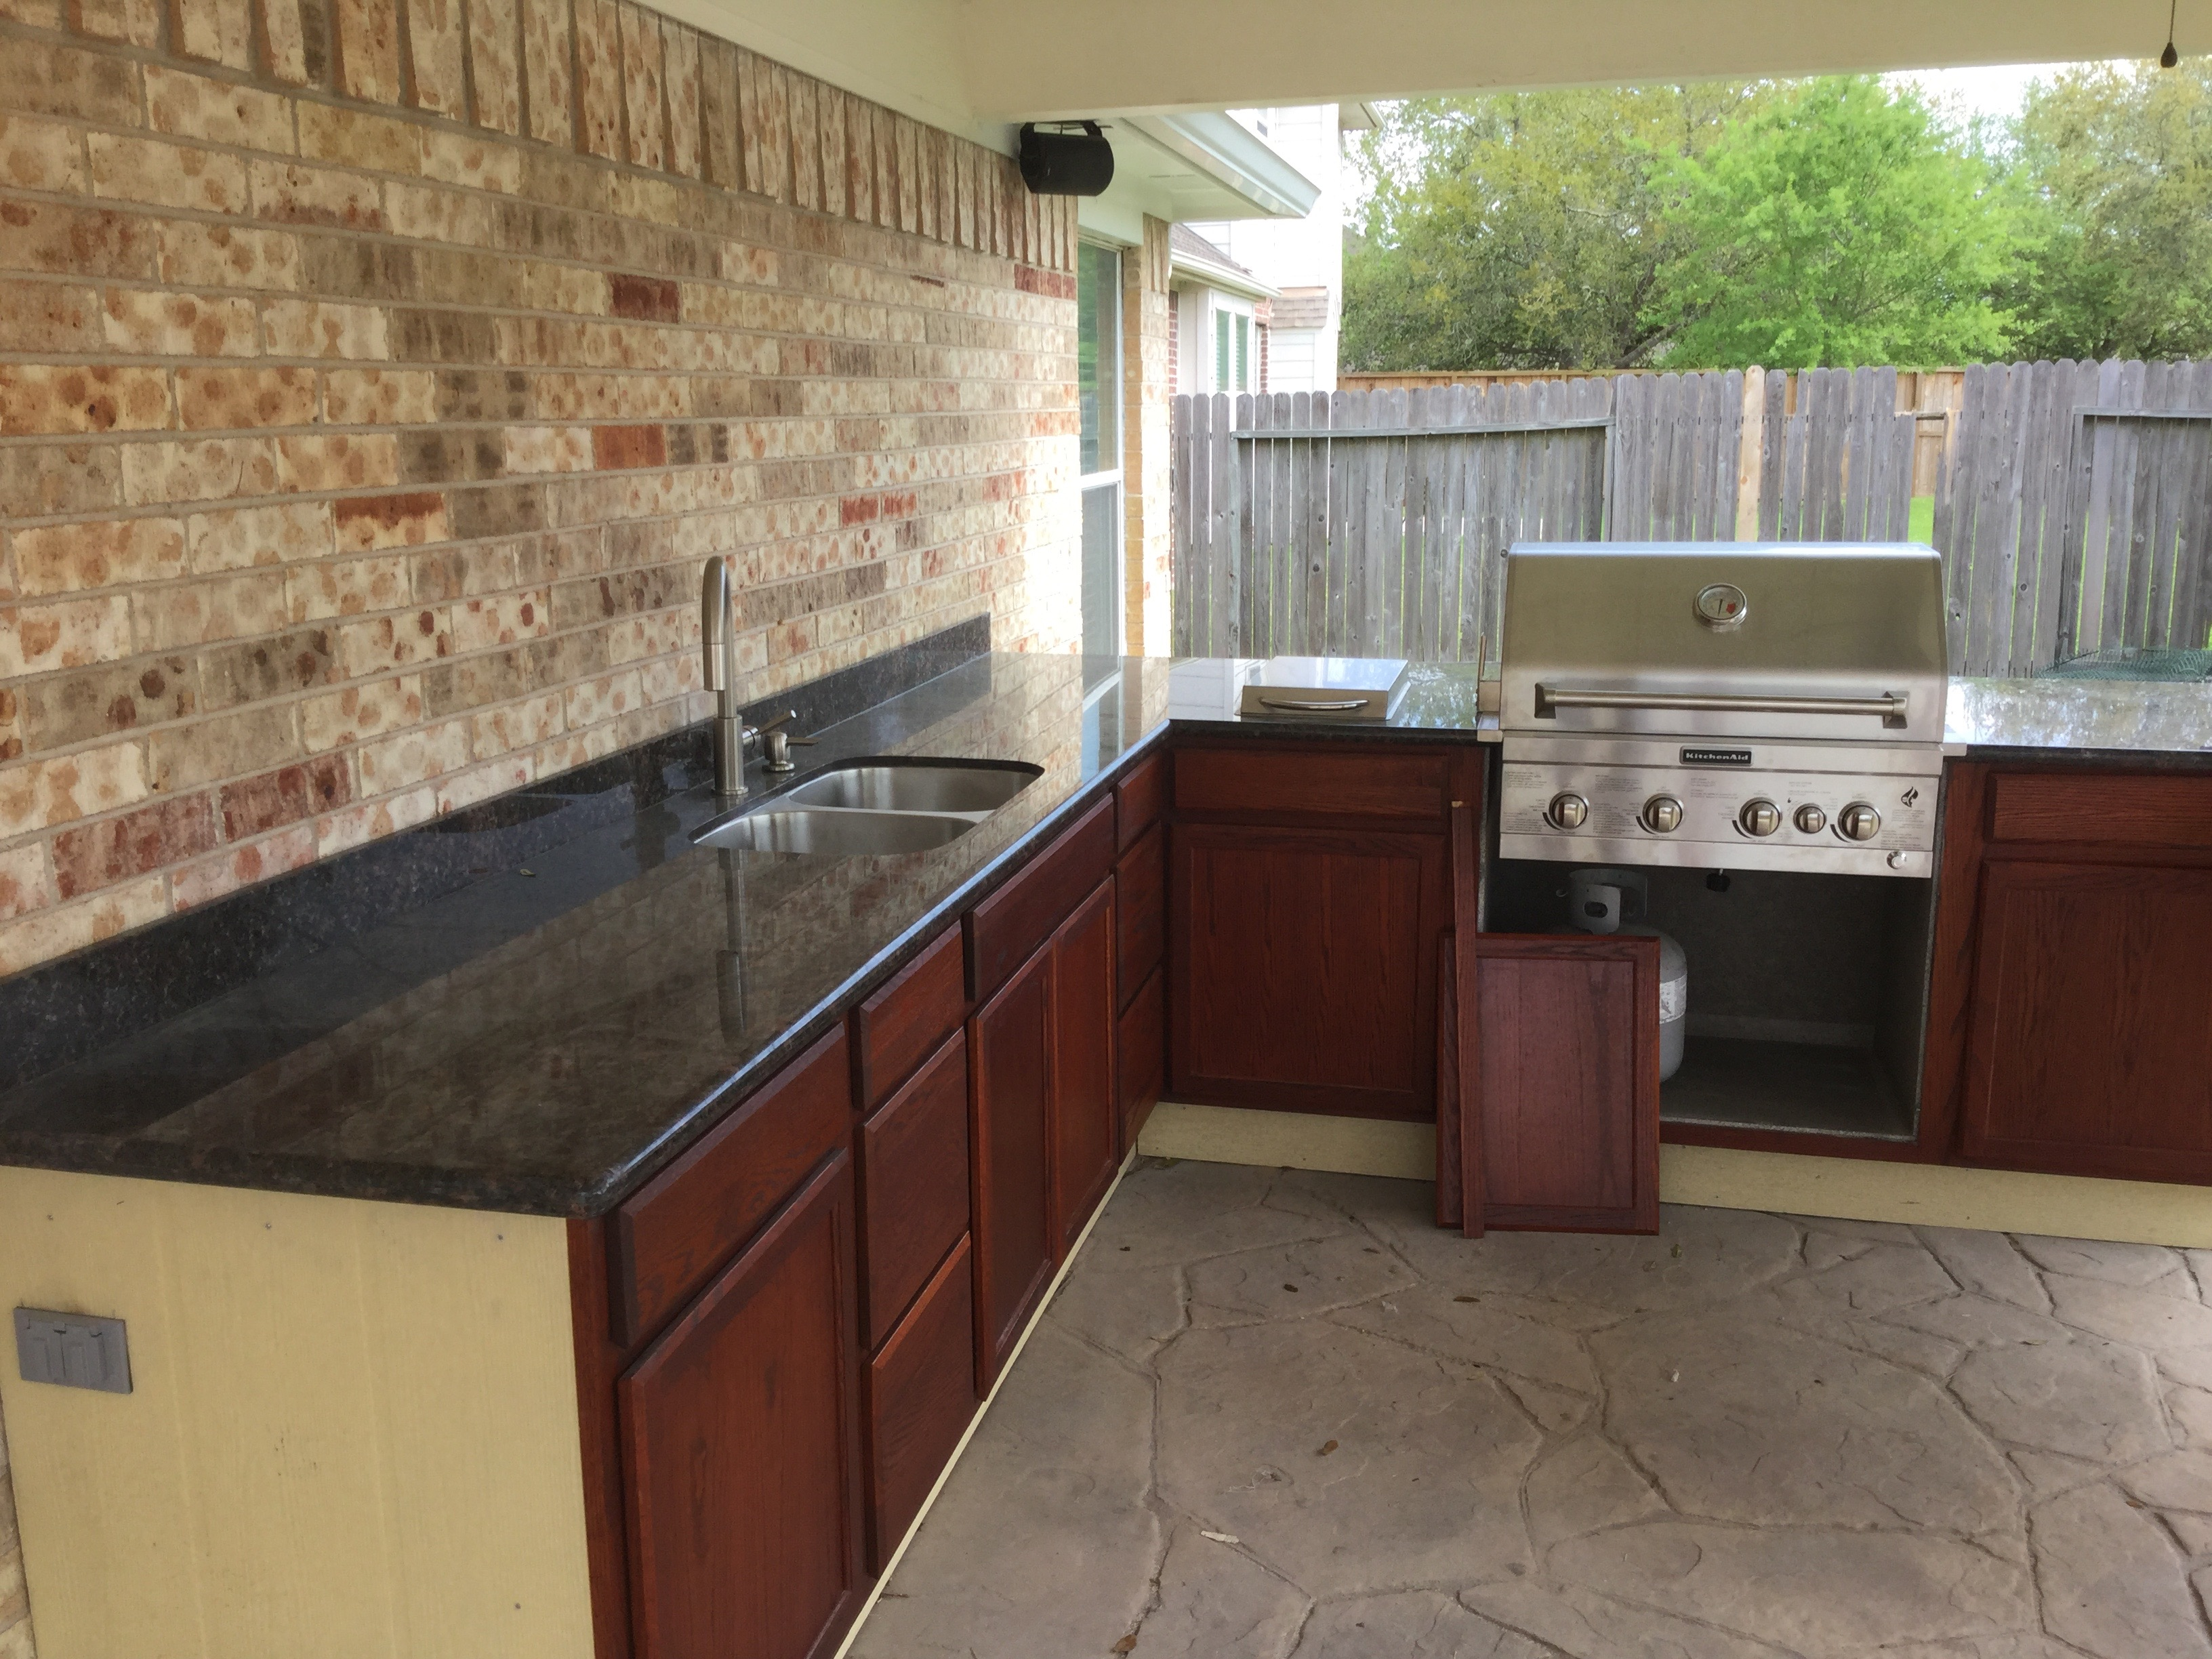 gallery kitchen remodeling houston Project Remodeling in Houston TX